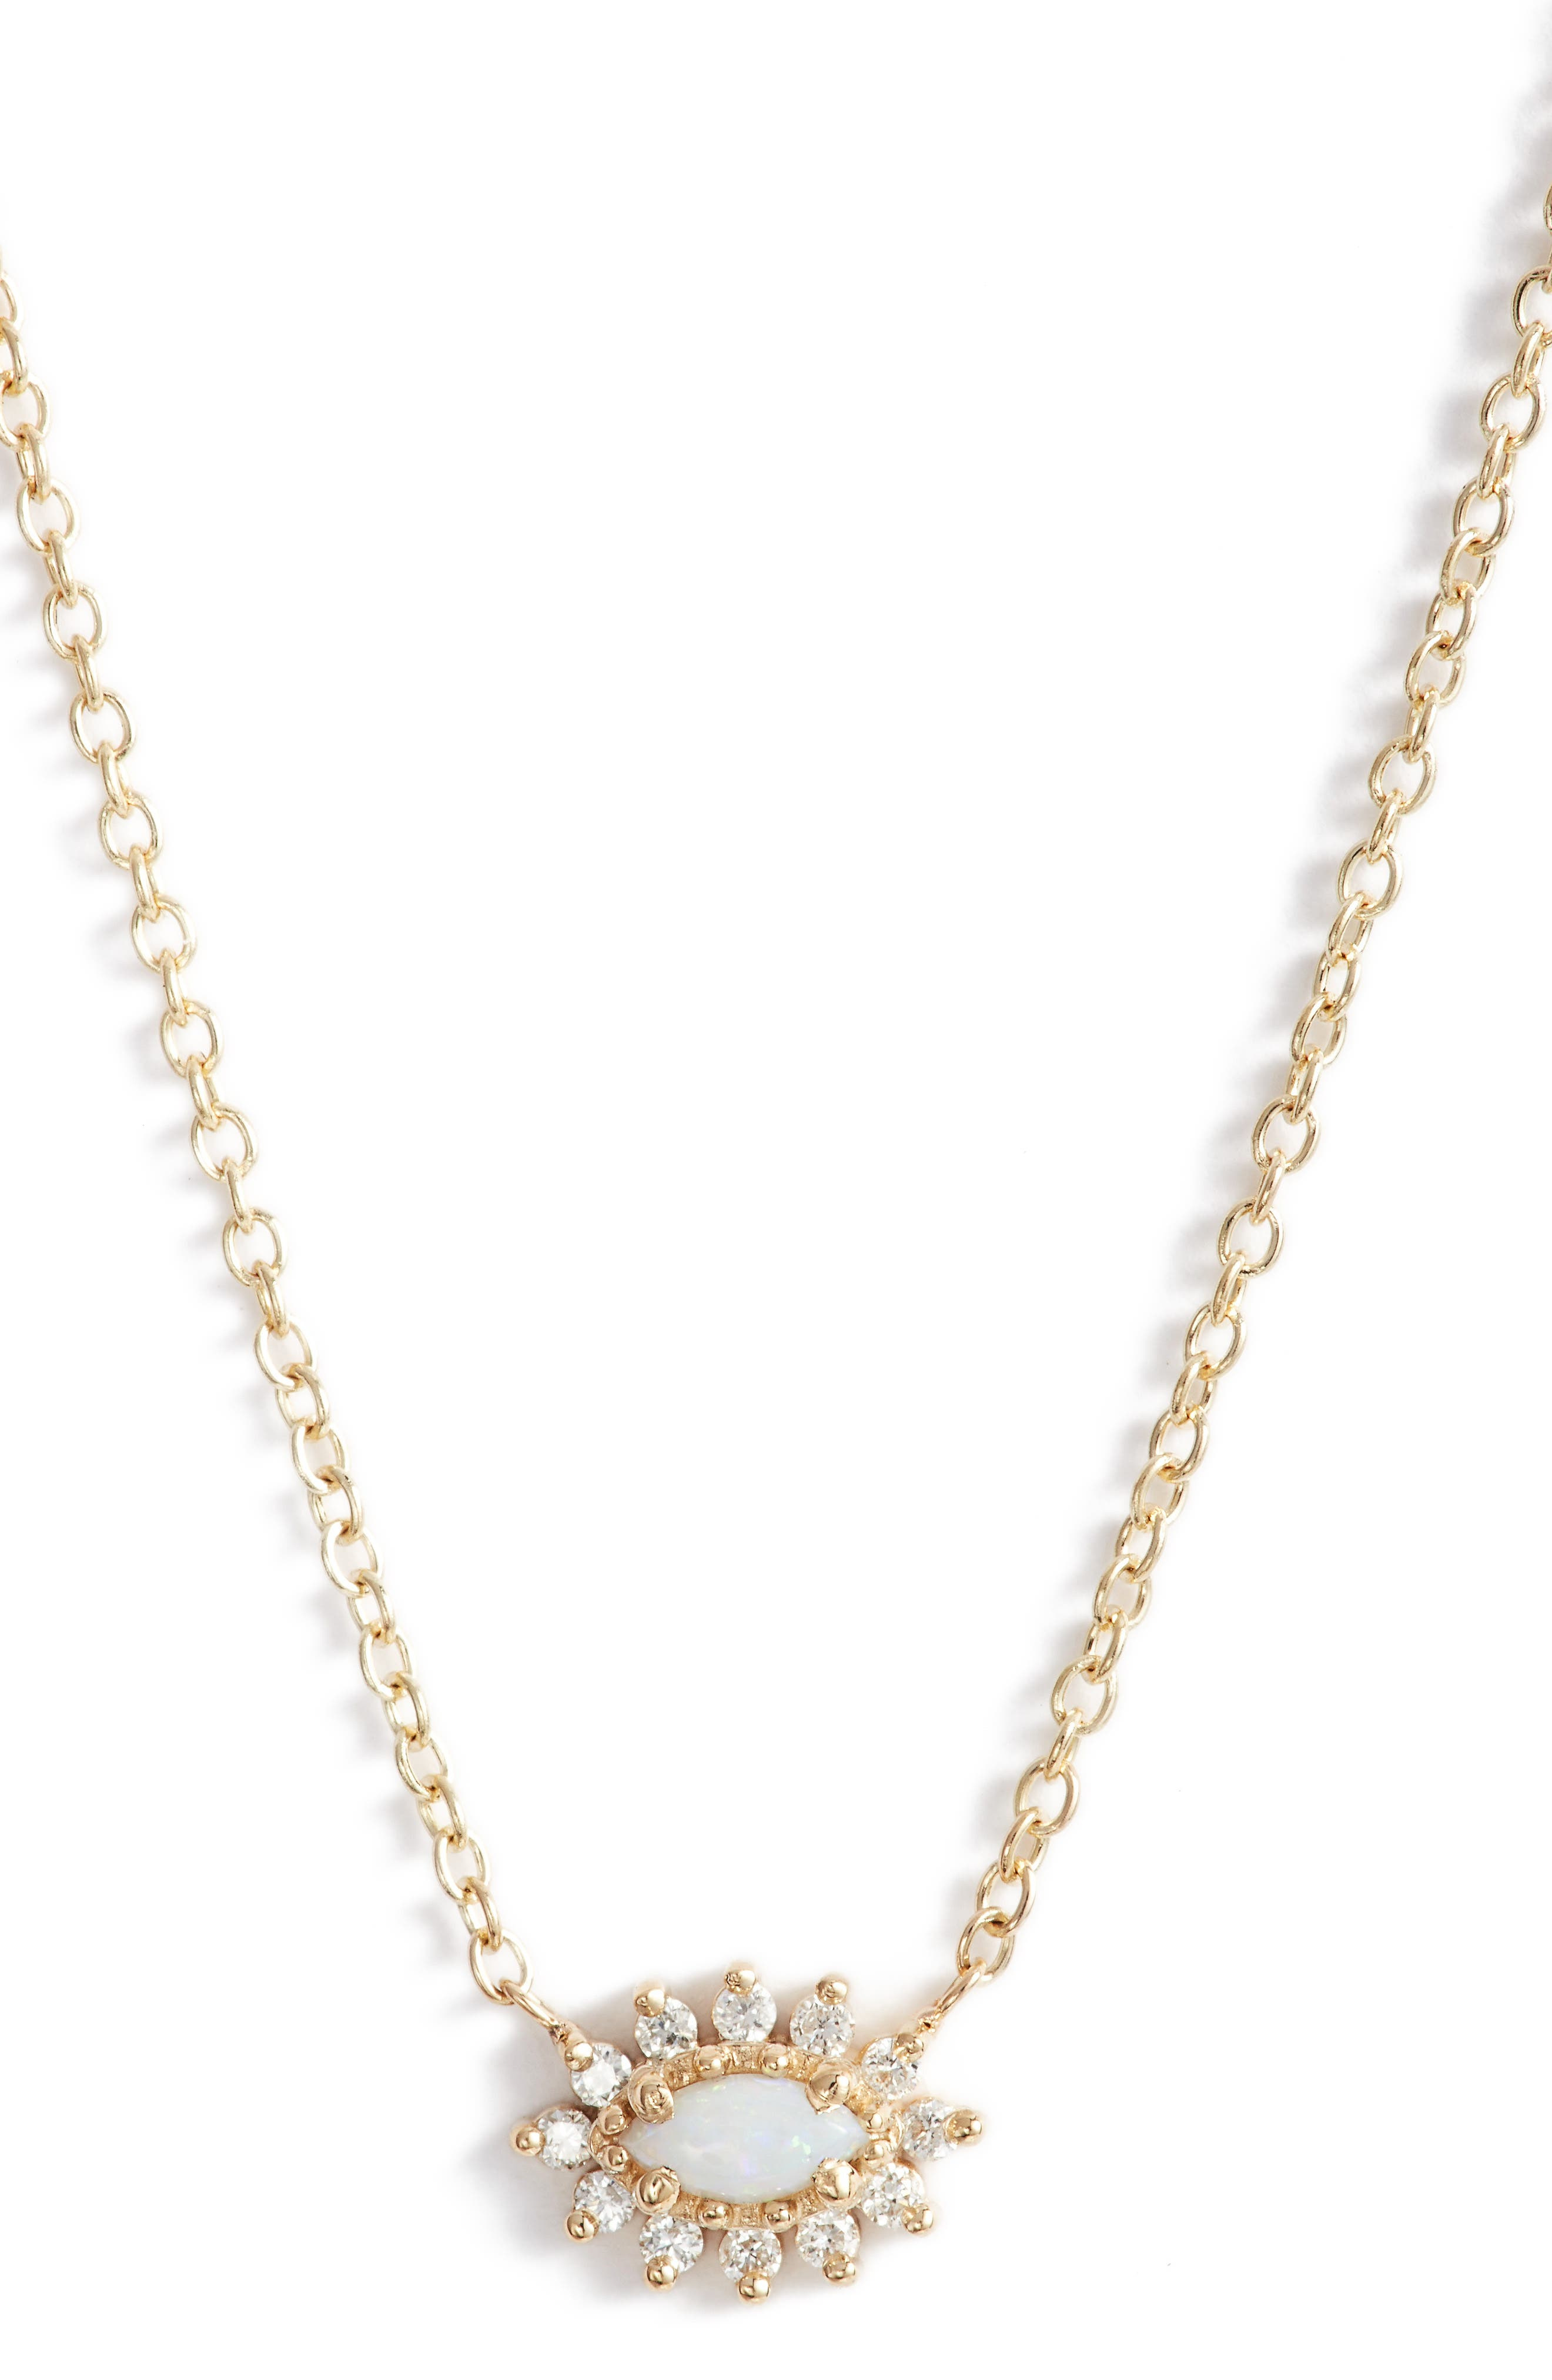 Main Image - Zoë Chicco Diamond & Opal Cluster Pendant Necklace (Nordstrom Exclusive)